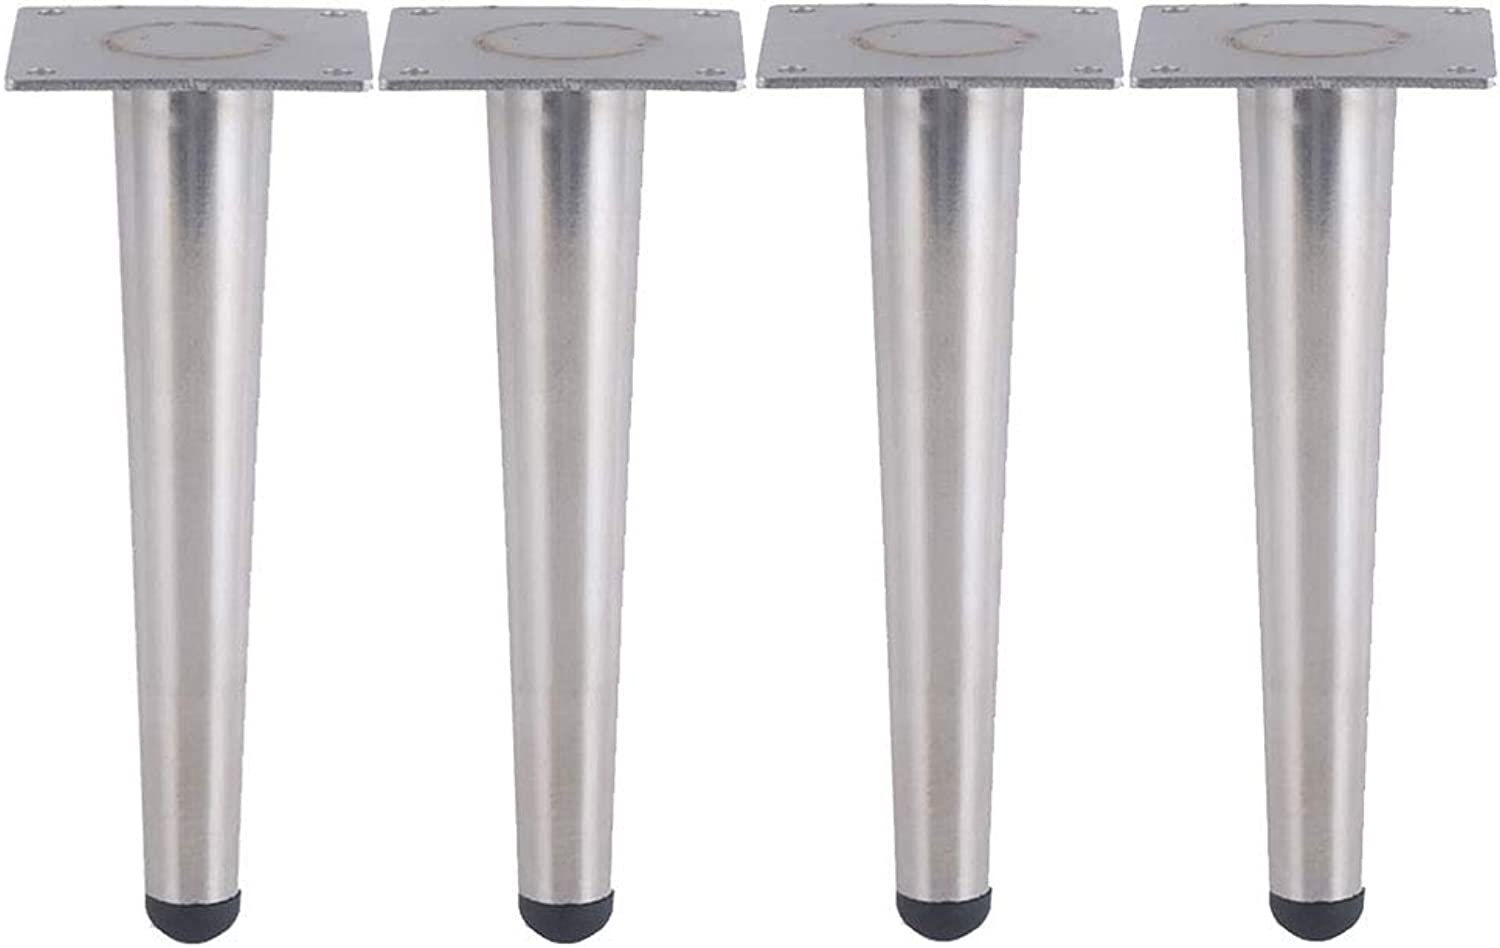 Stainless Steel Sofa feet Table Legs Cabinet feet, Support Furniture Hardware Accessories, 1 Piece  4 Pieces, Silver